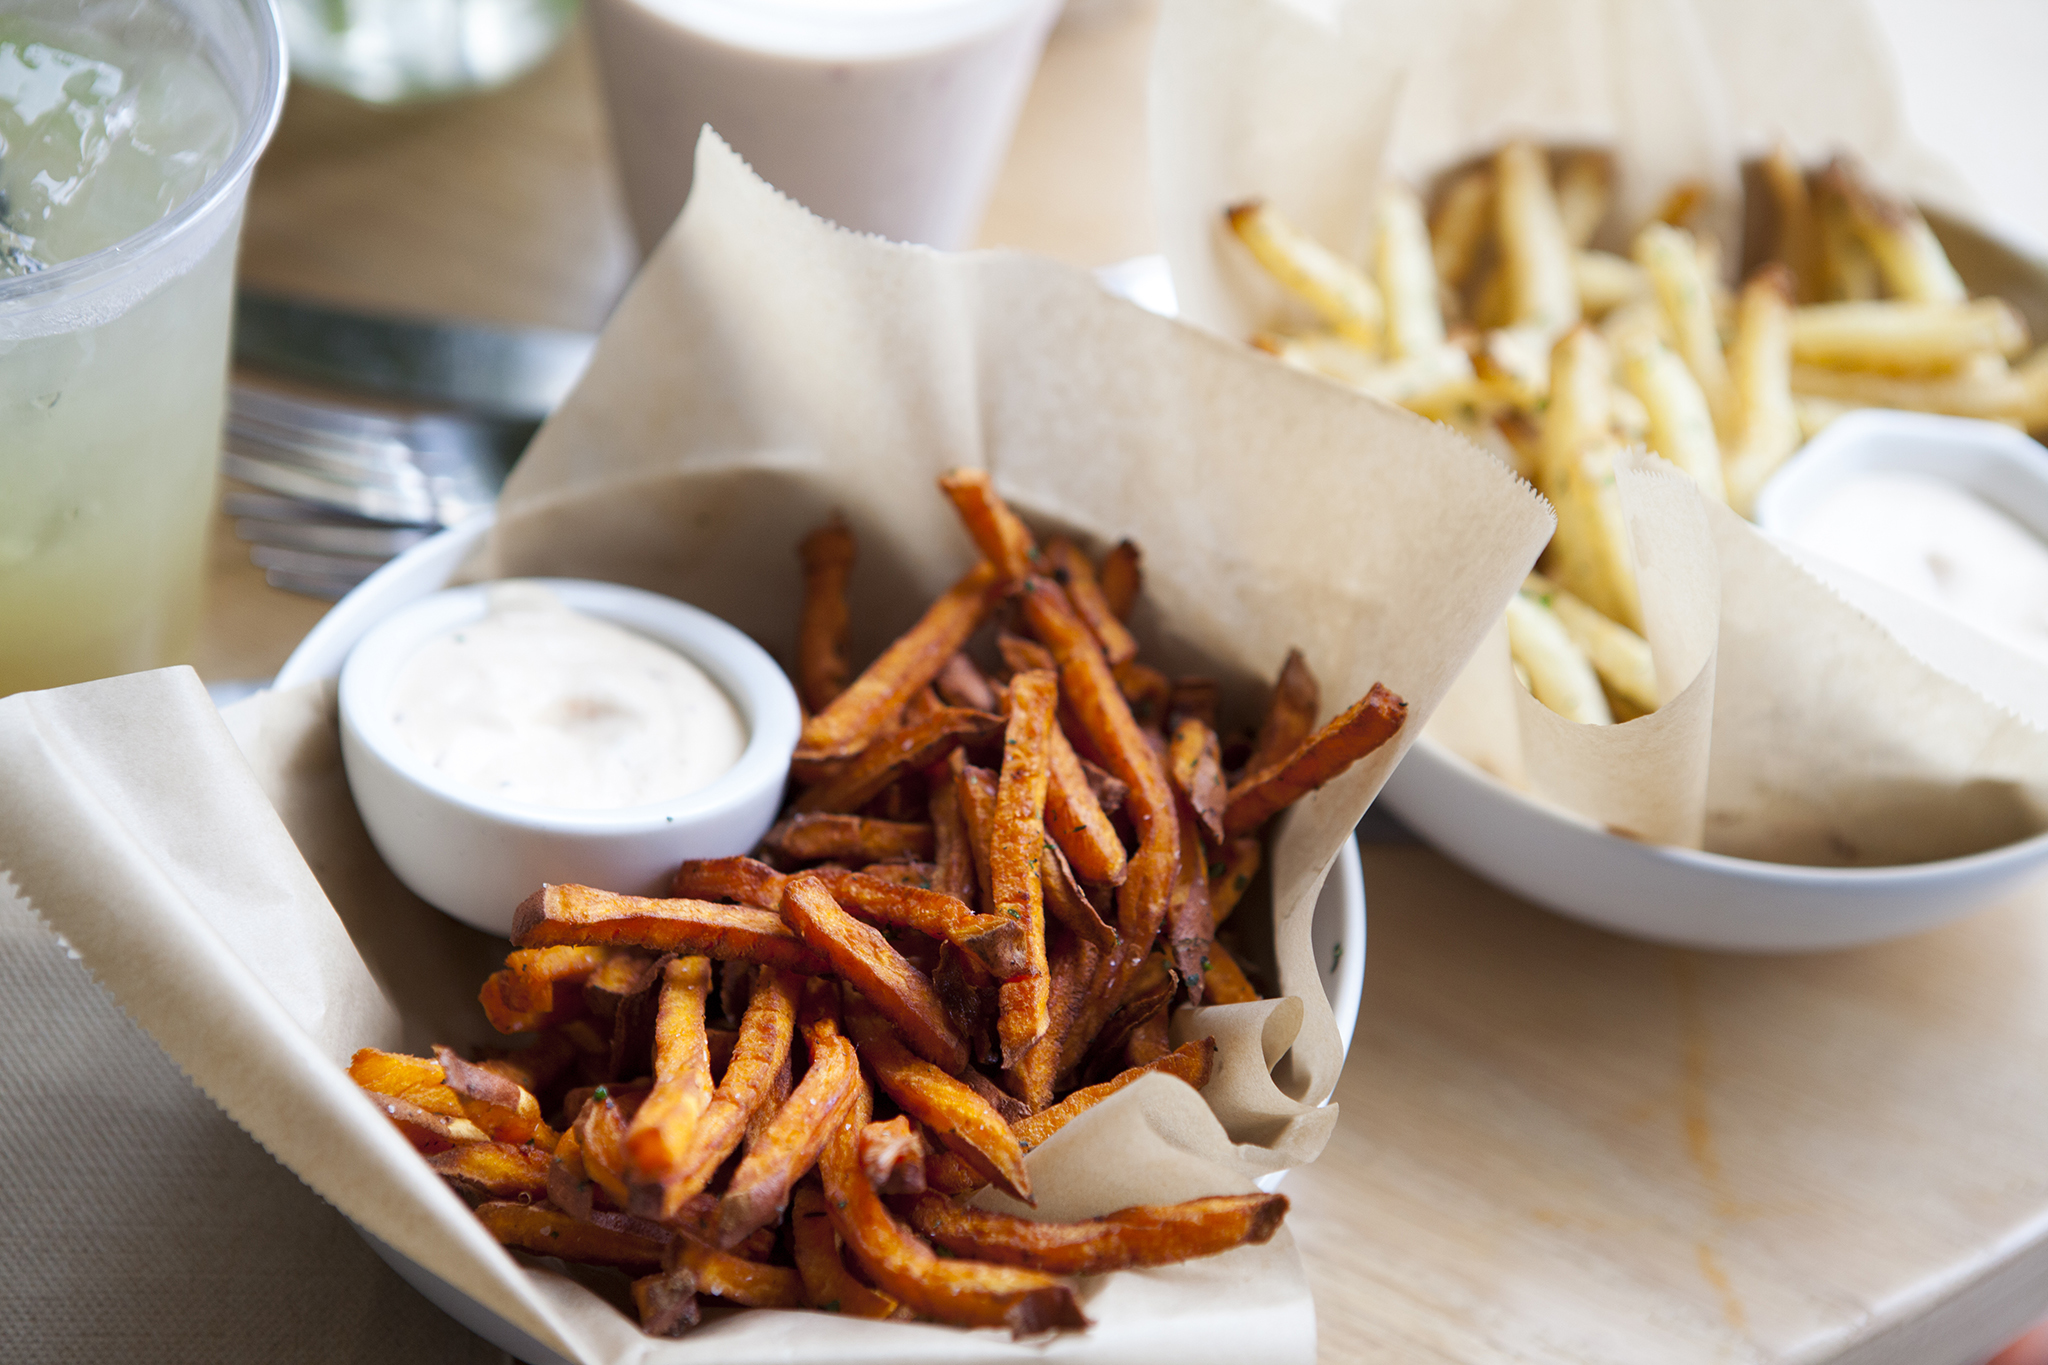 Organic sweet potato and russet potato fries at Pono Burger